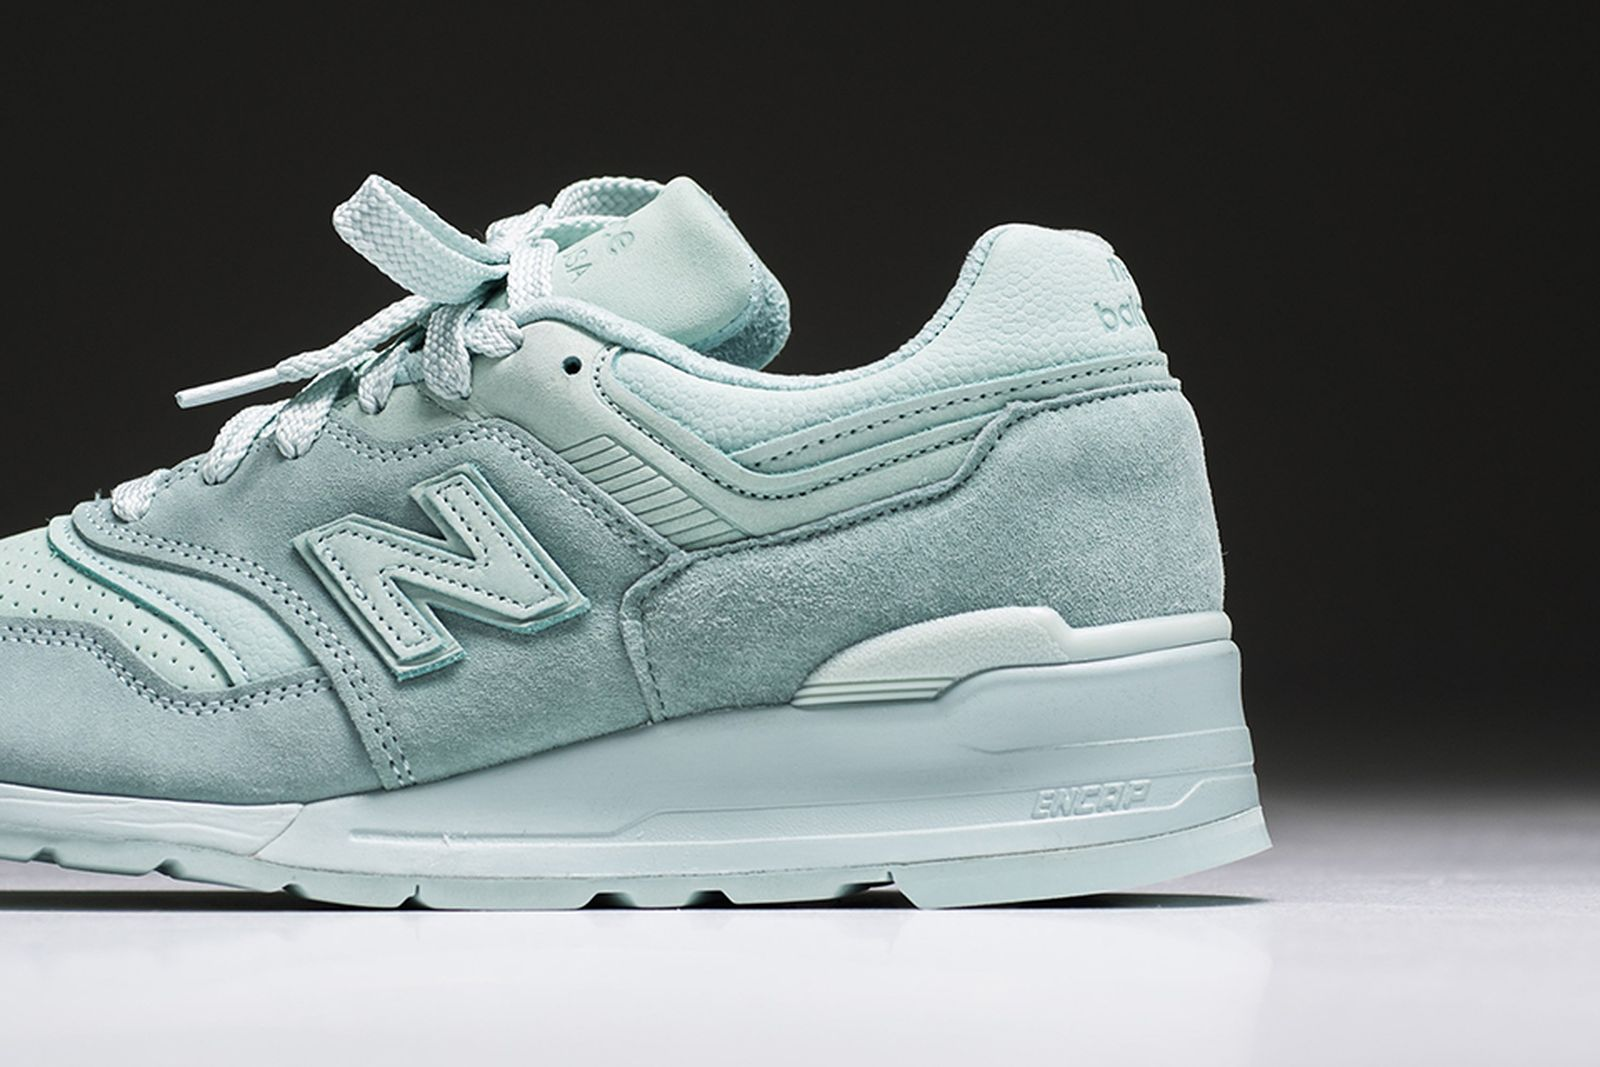 new balance 997 mint julep release date price